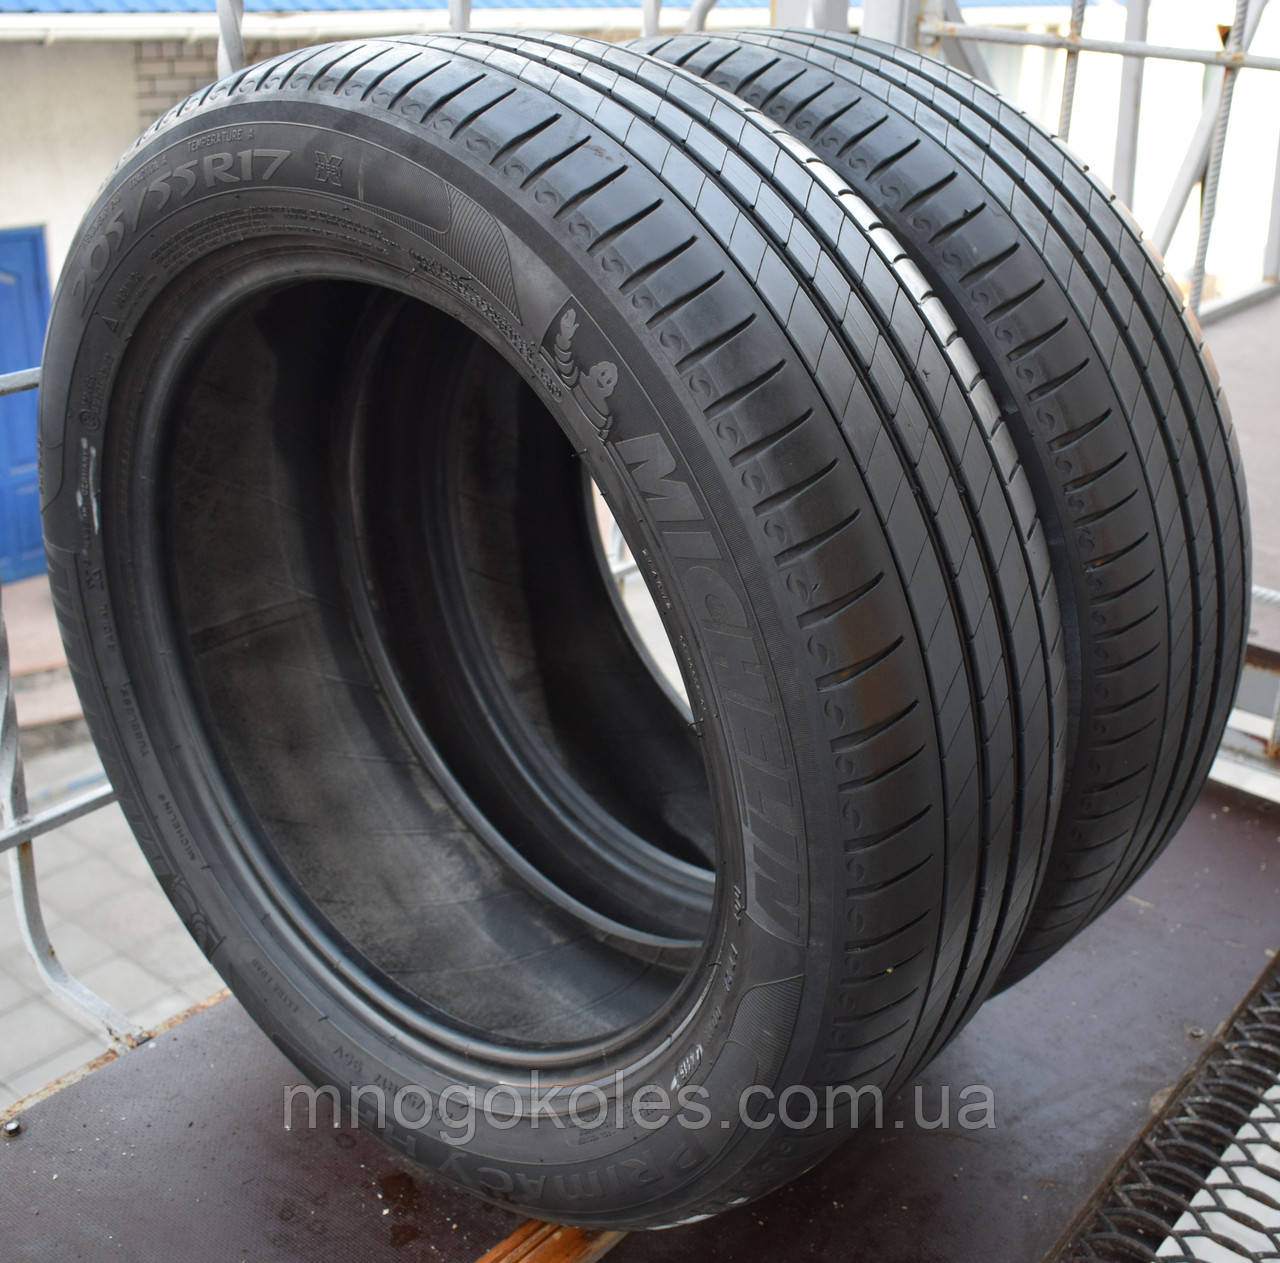 Шини б/у 205/55 R17 Michelin Primacy HP, ЛІТО, пара